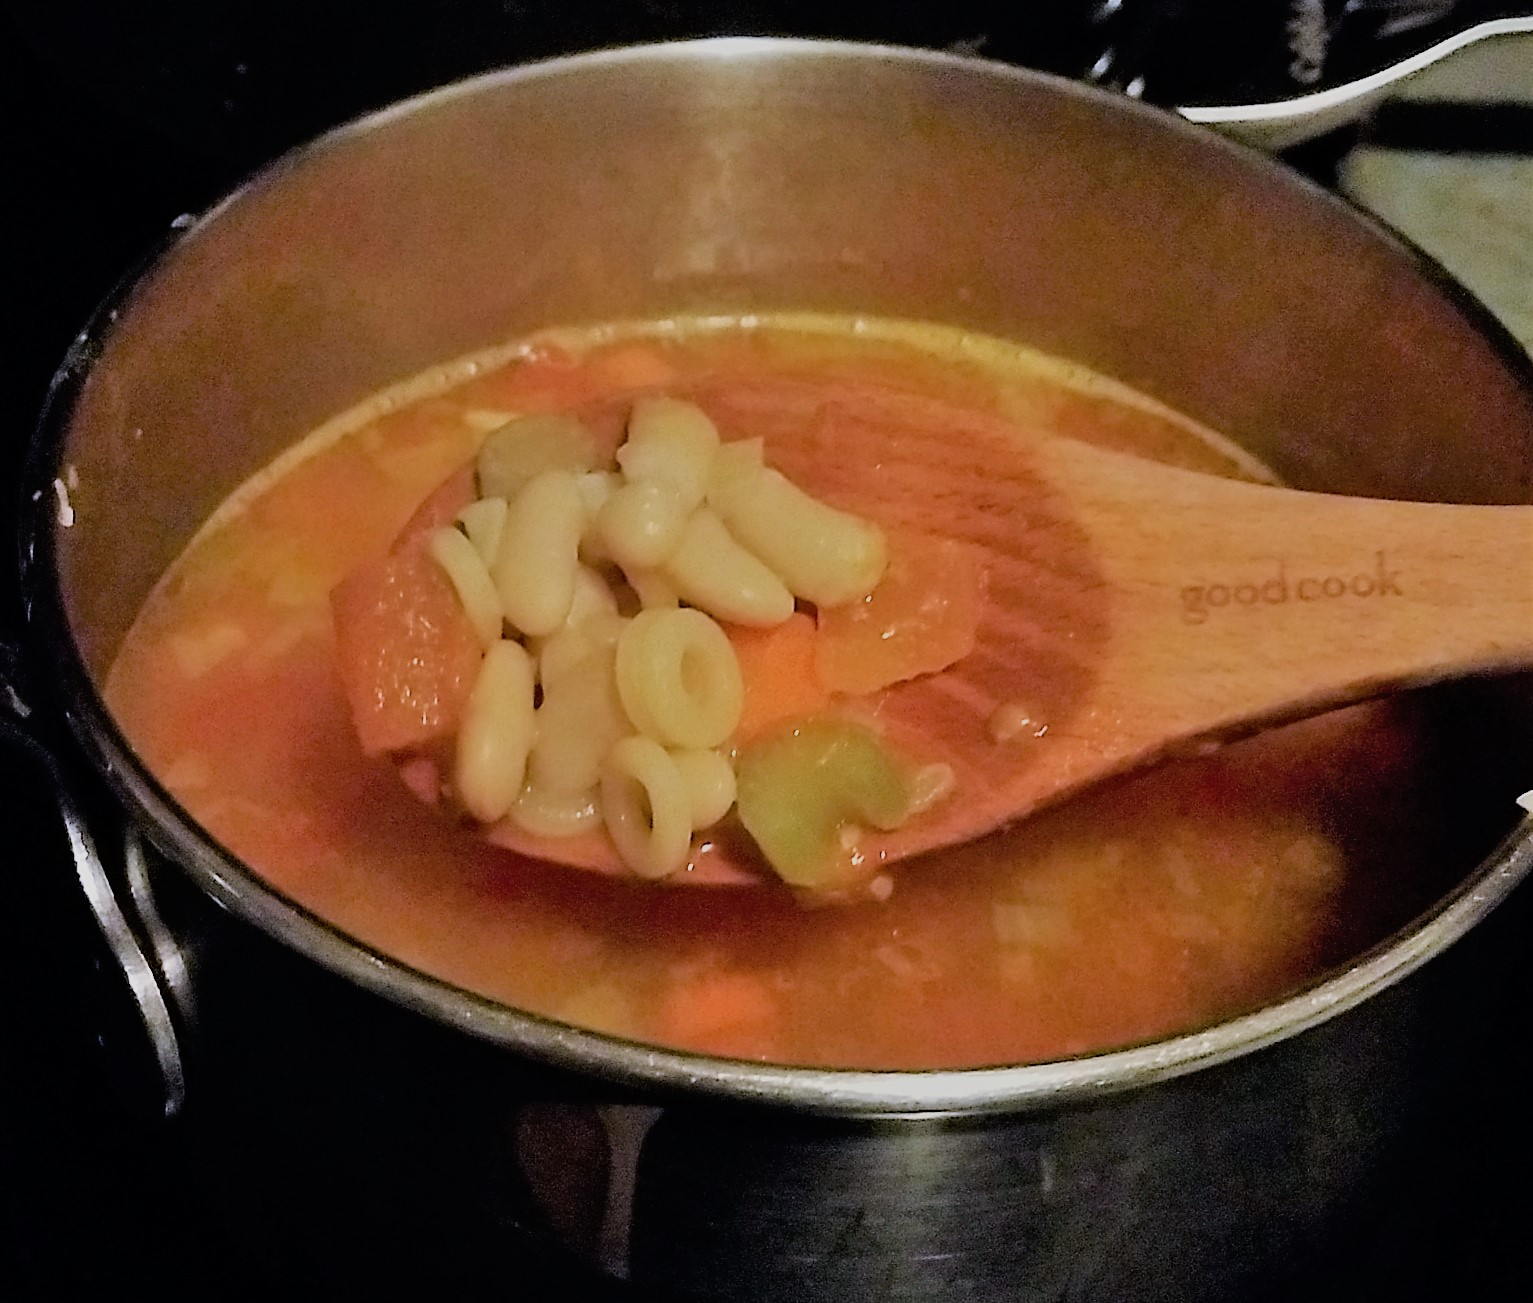 A pot of soup with some tomato, white beans, celery and pasta rings on a wooden spoon.